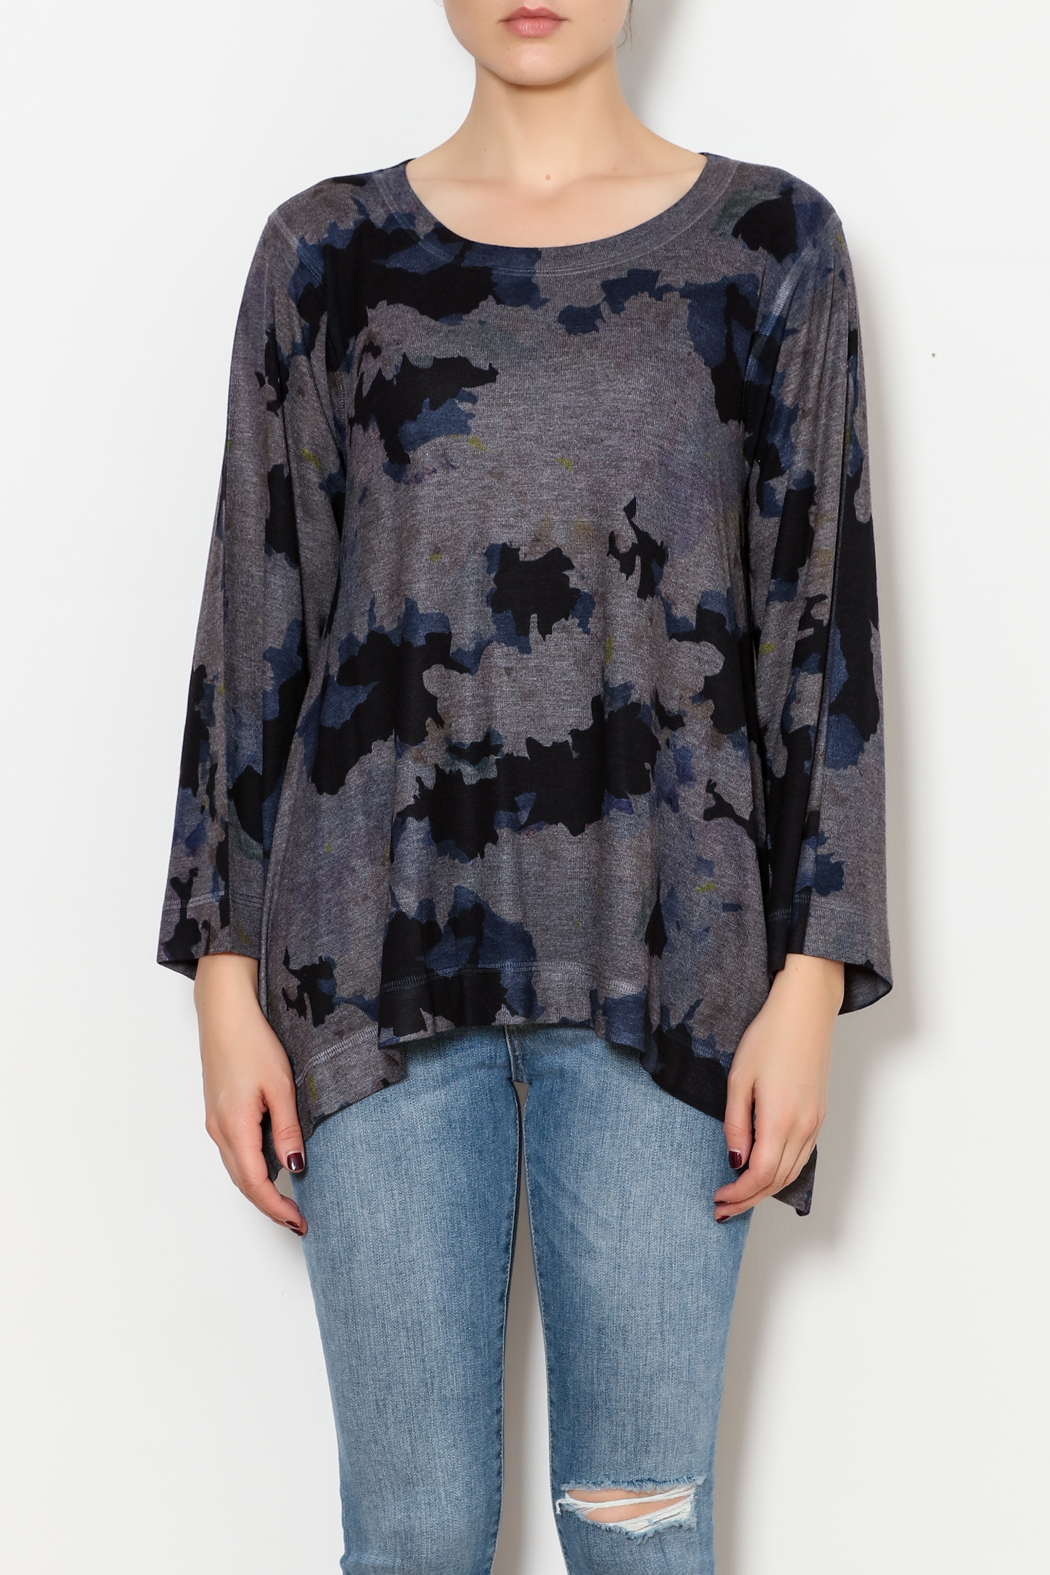 Nally & Millie Floral Top - Front Full Image